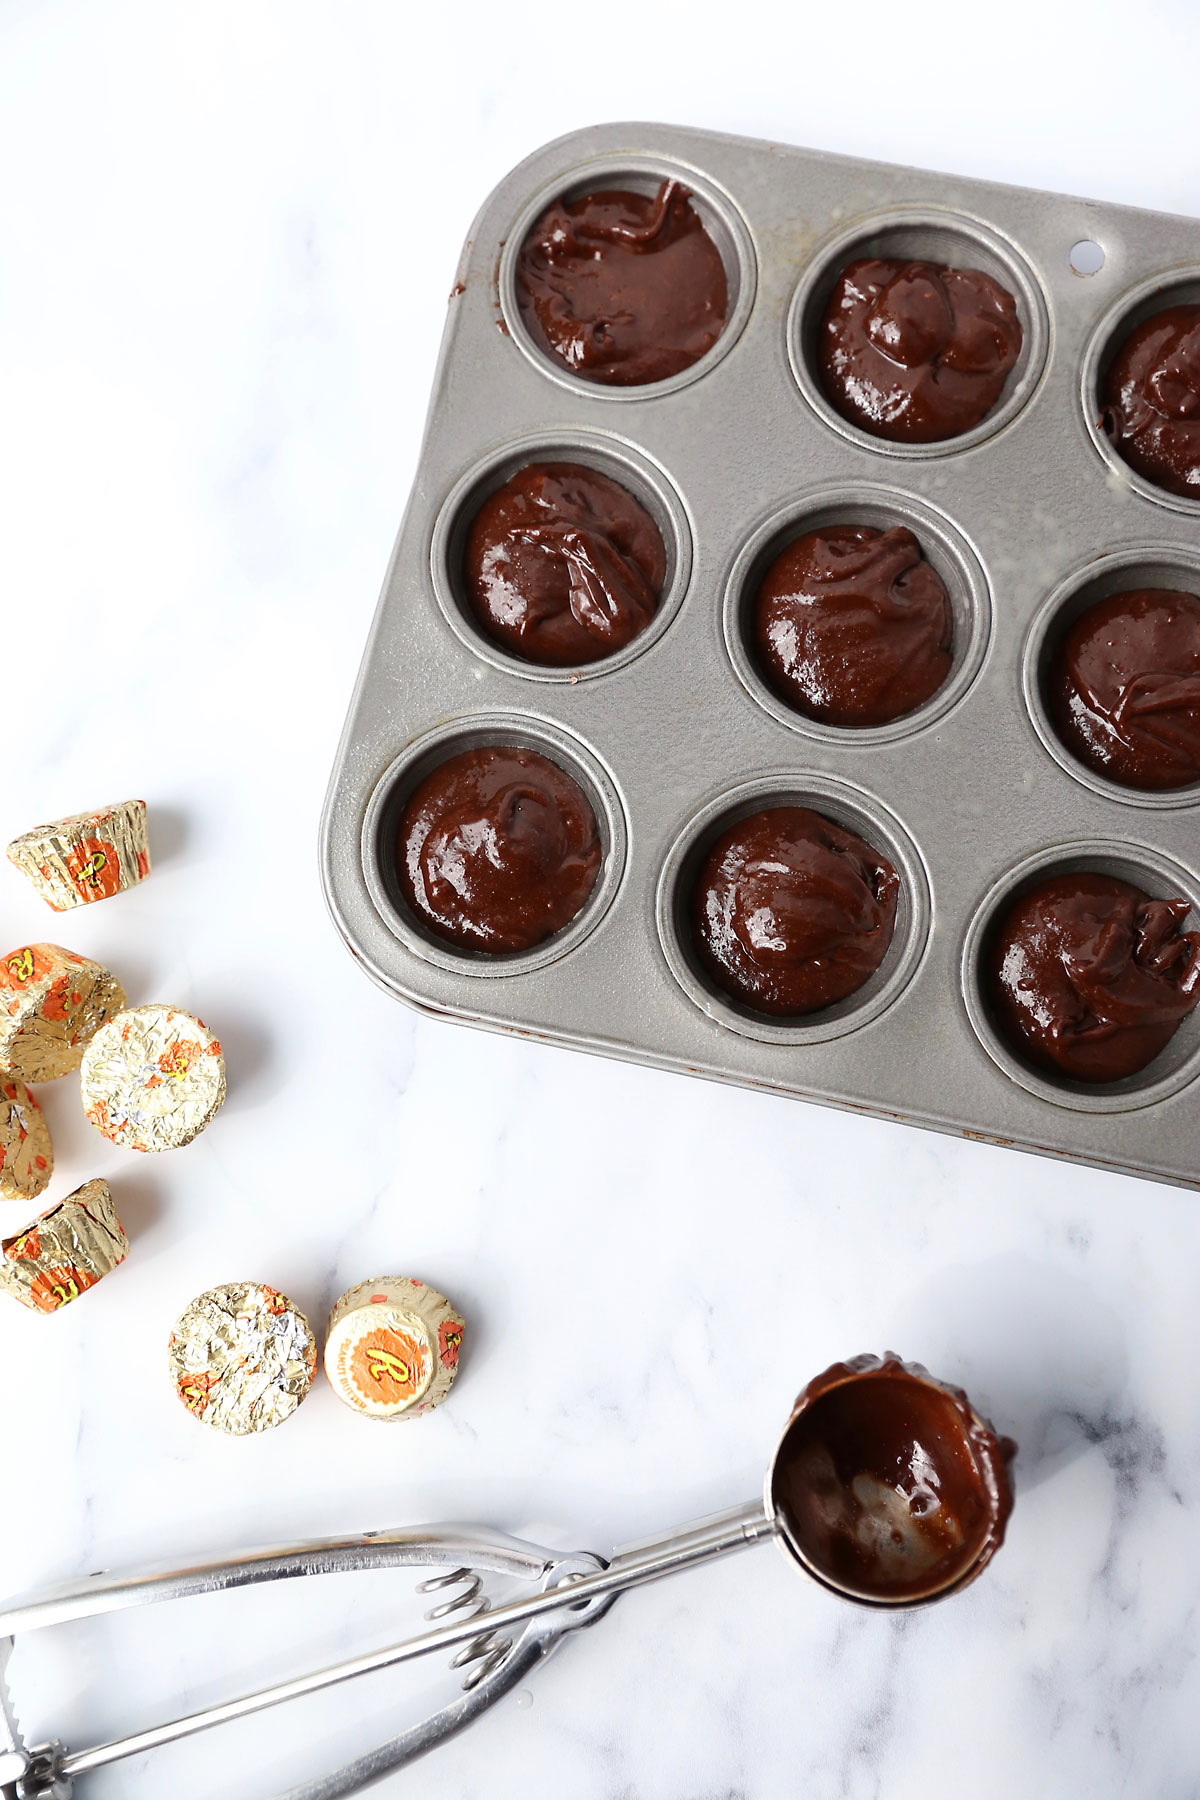 Peanut butter cup brownie bites: fill muffin cups 2/3 way full